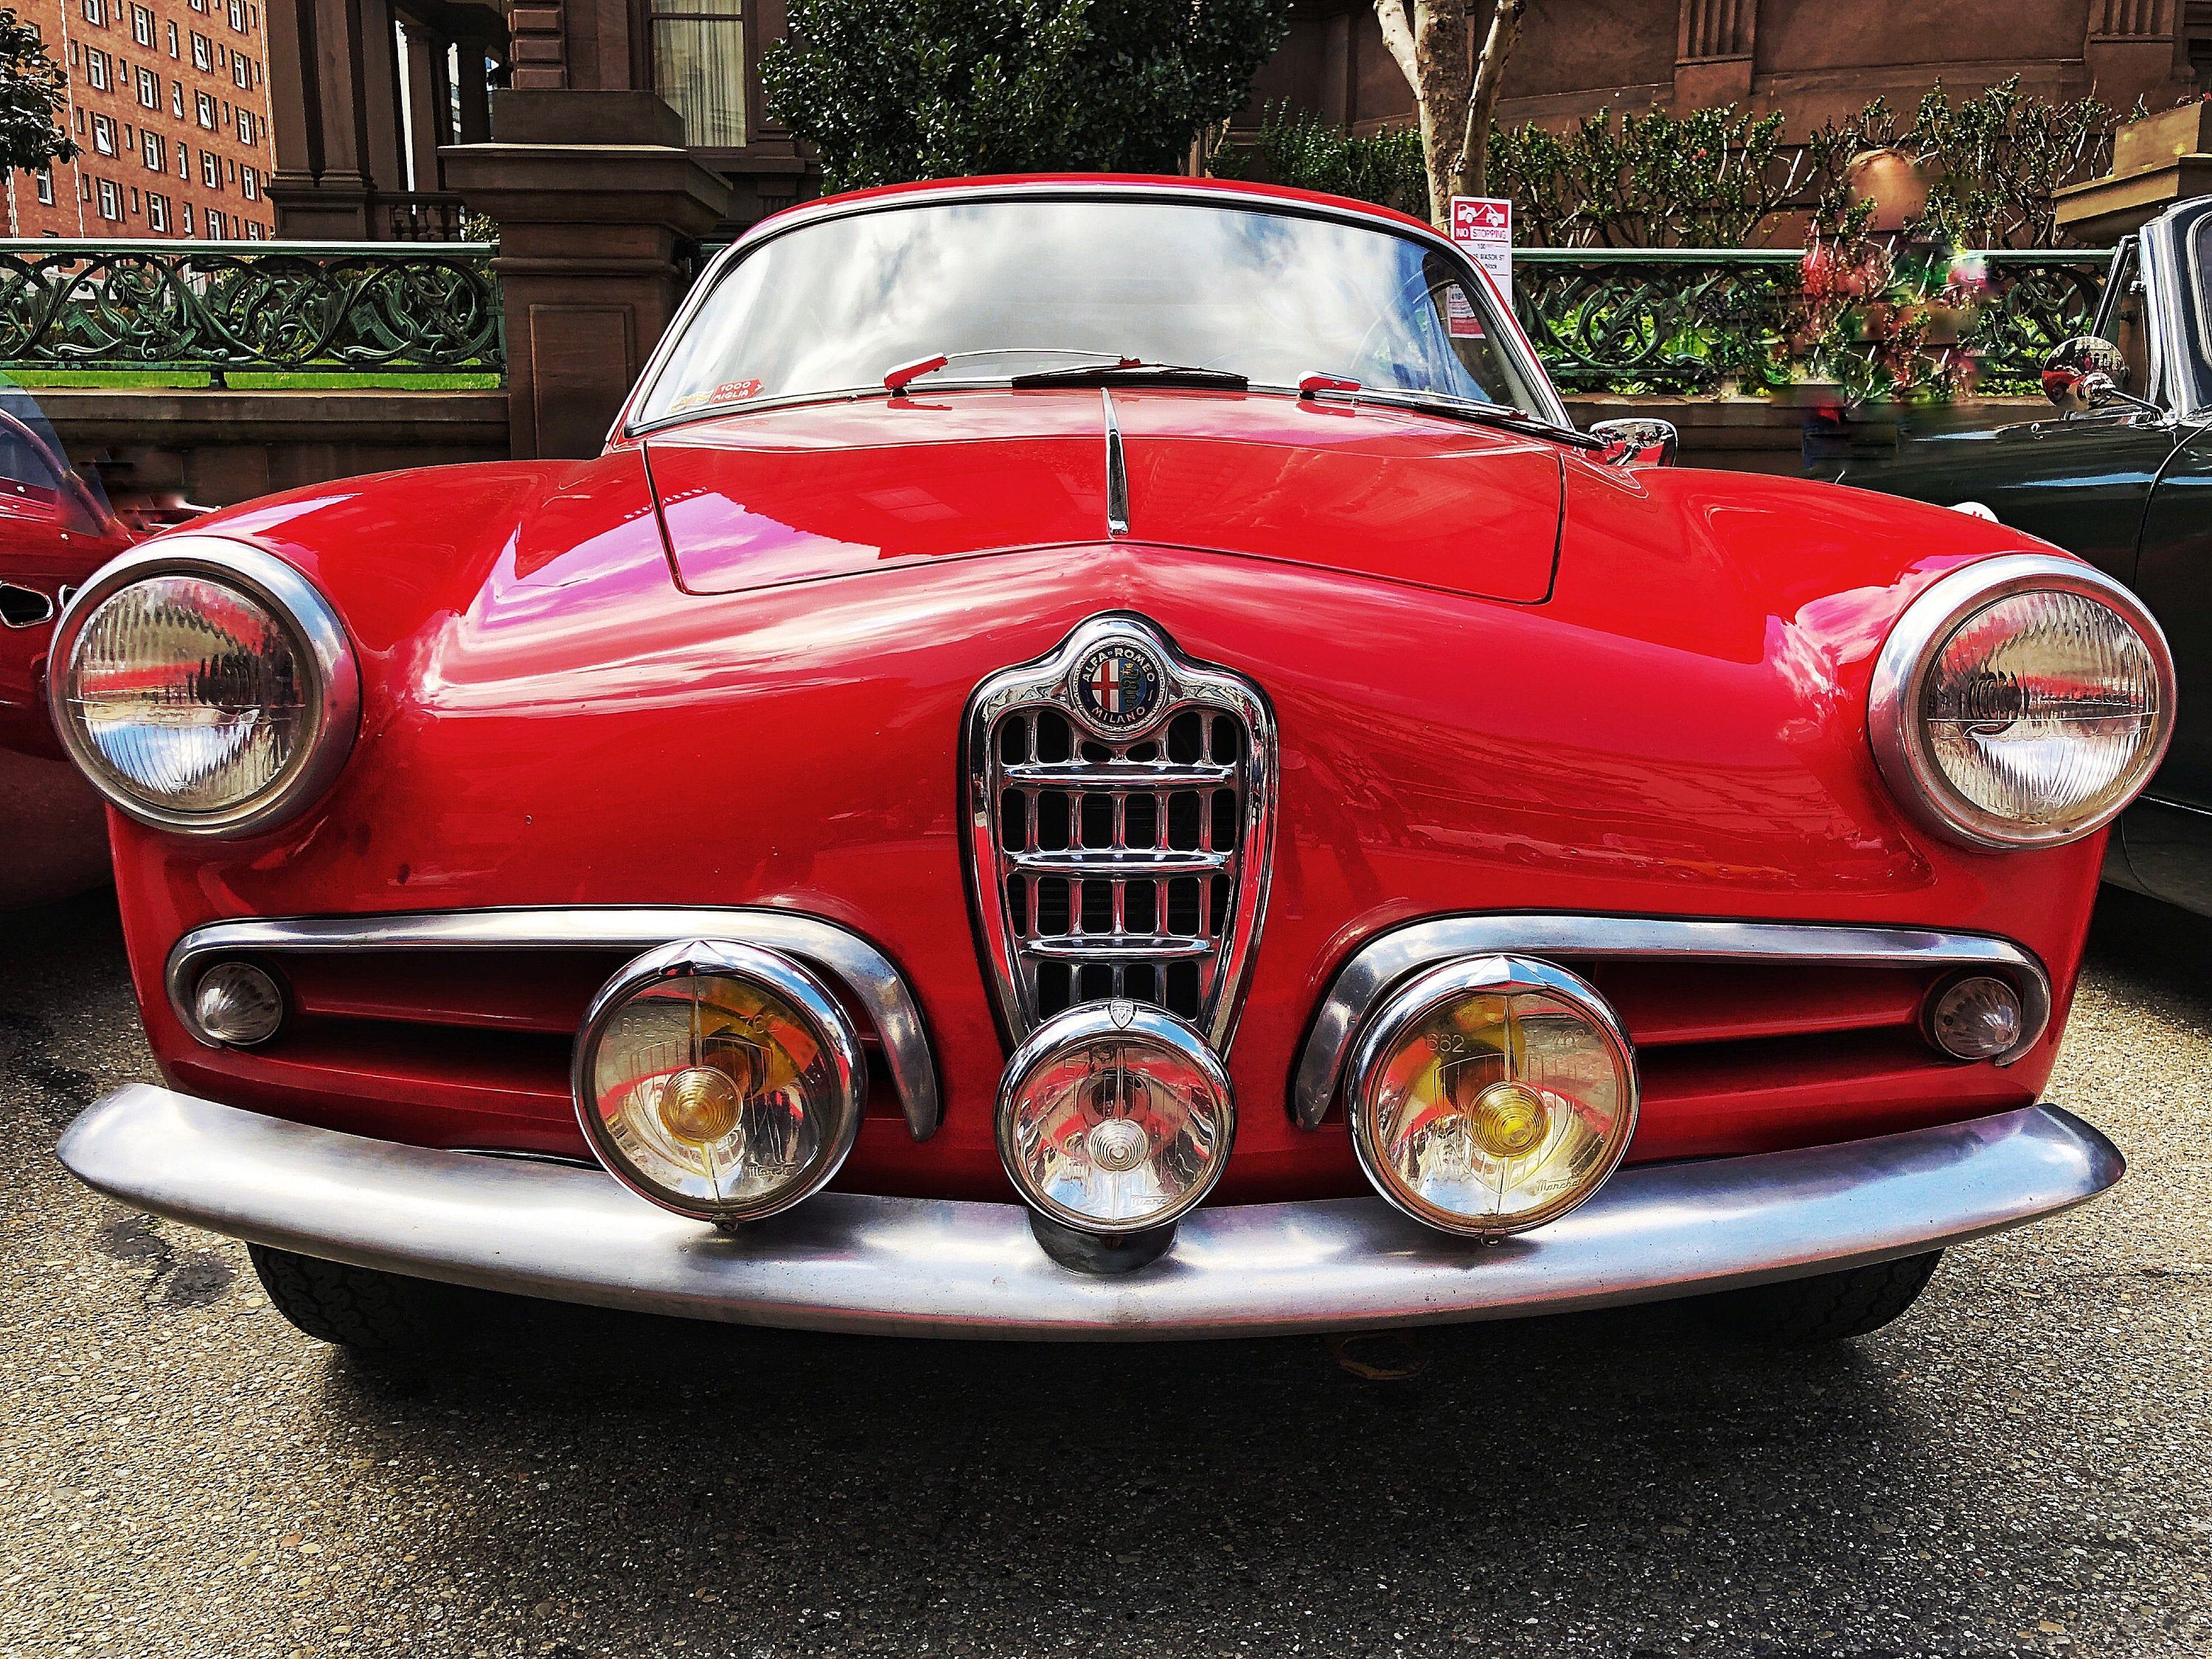 Alfa | Alfa Romeo | Red Classic Car | Italian Roadster | Fine Art | Restaurant Décor | Hotel Décor | Automotive Art